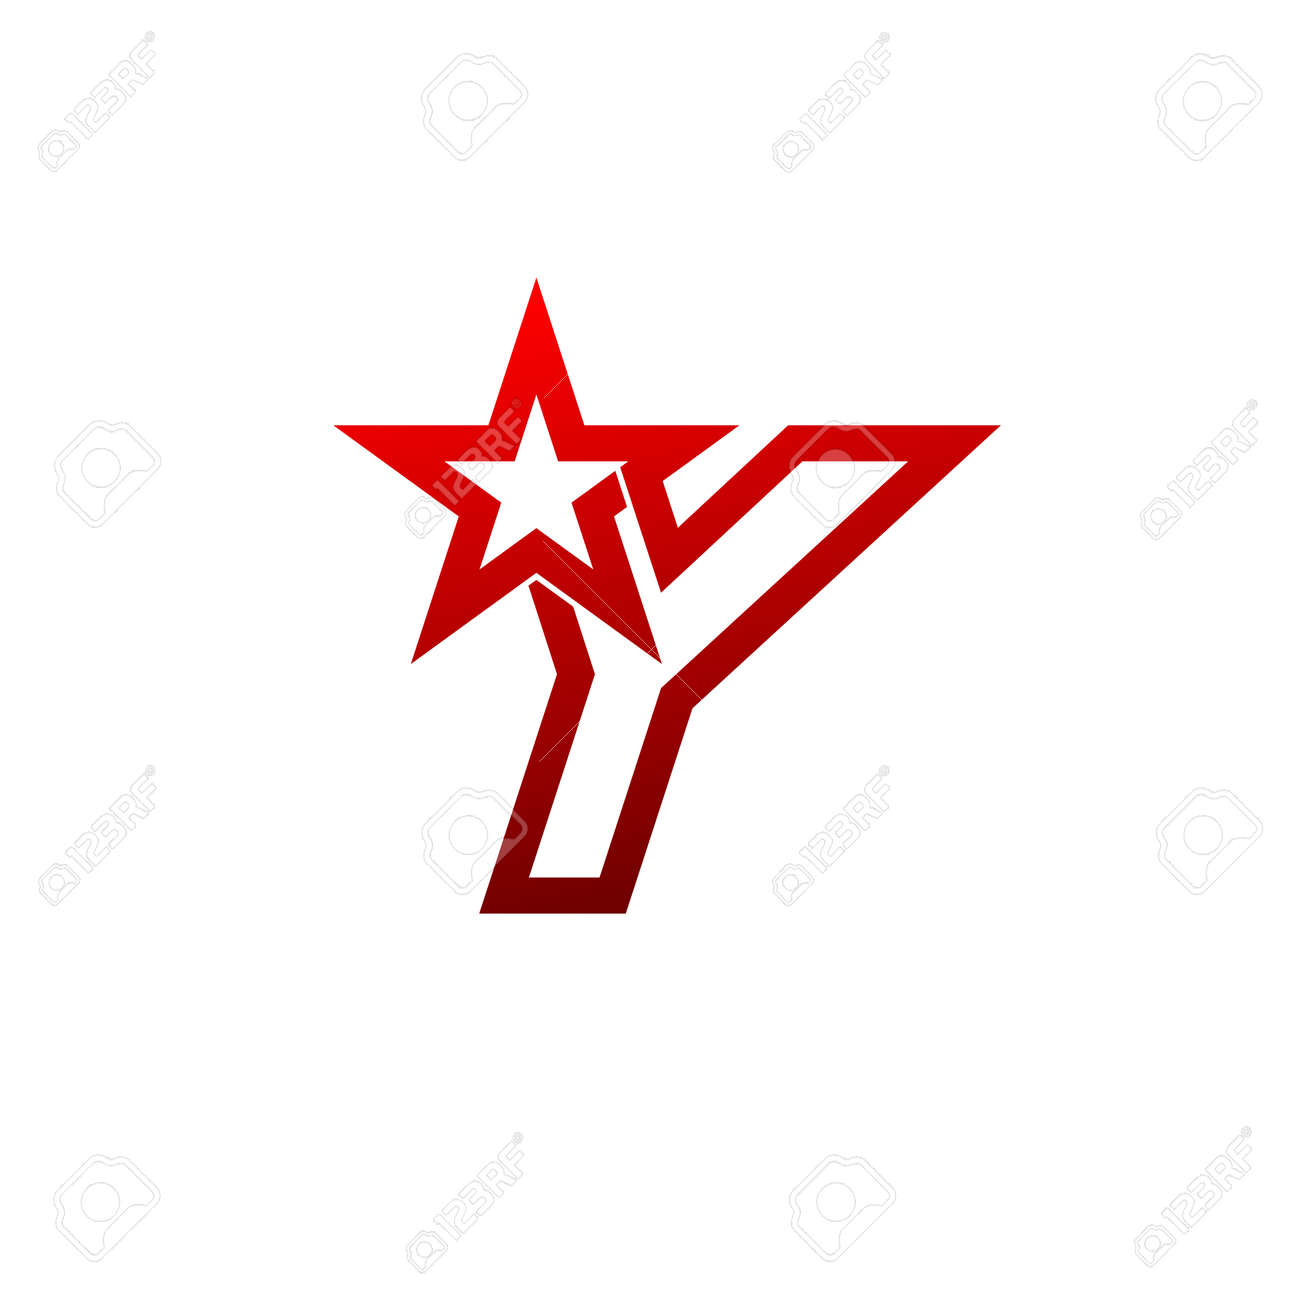 letter y logo red star sign branding identity corporate unusual logo design template stock vector